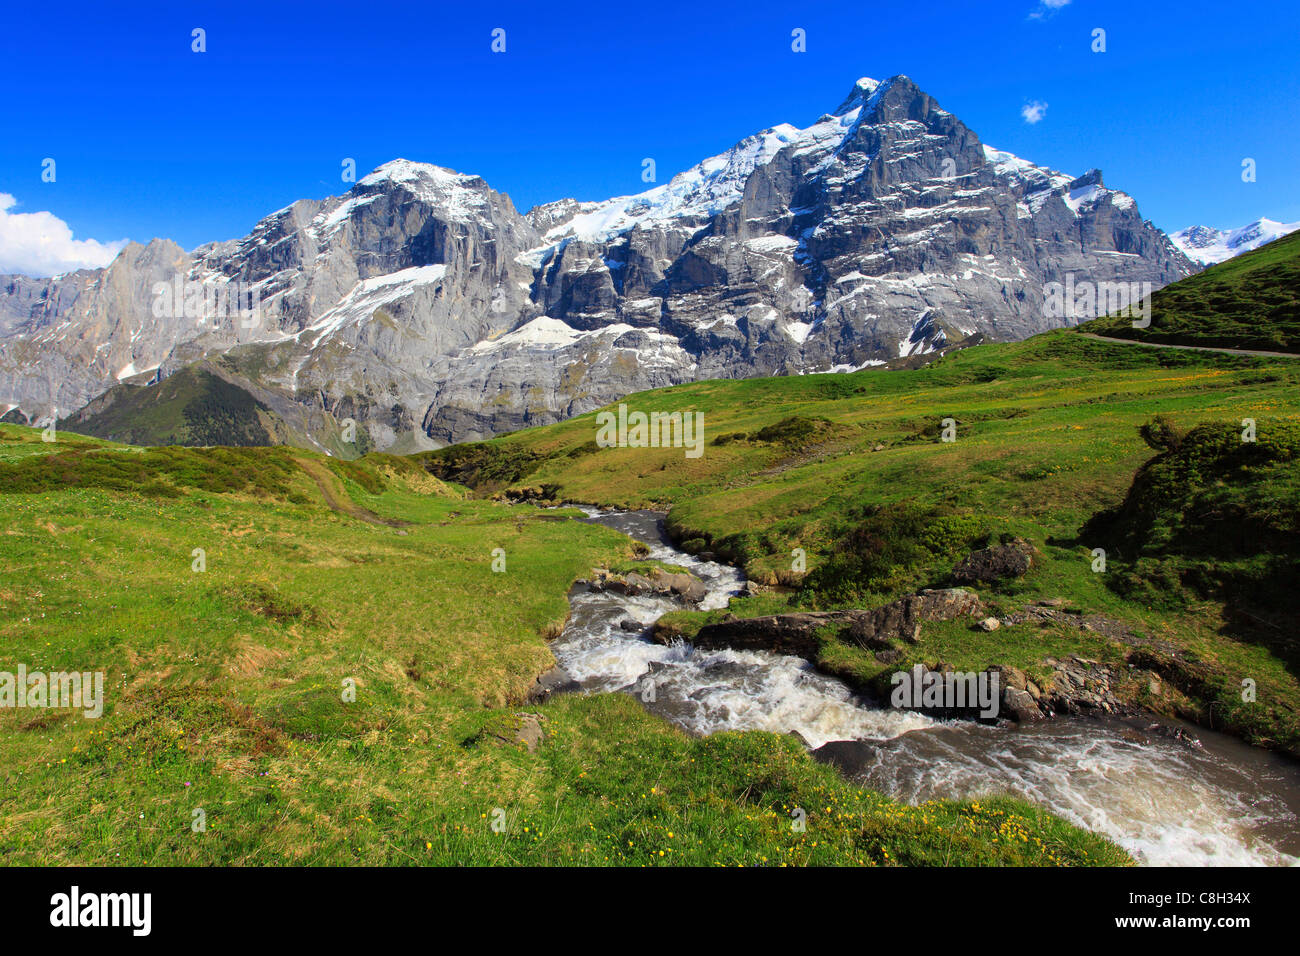 Alp, alps, flora, view, mountain, mountains, mountain spring, mountain massif, Bern, Bernese Oberland, flowers, - Stock Image